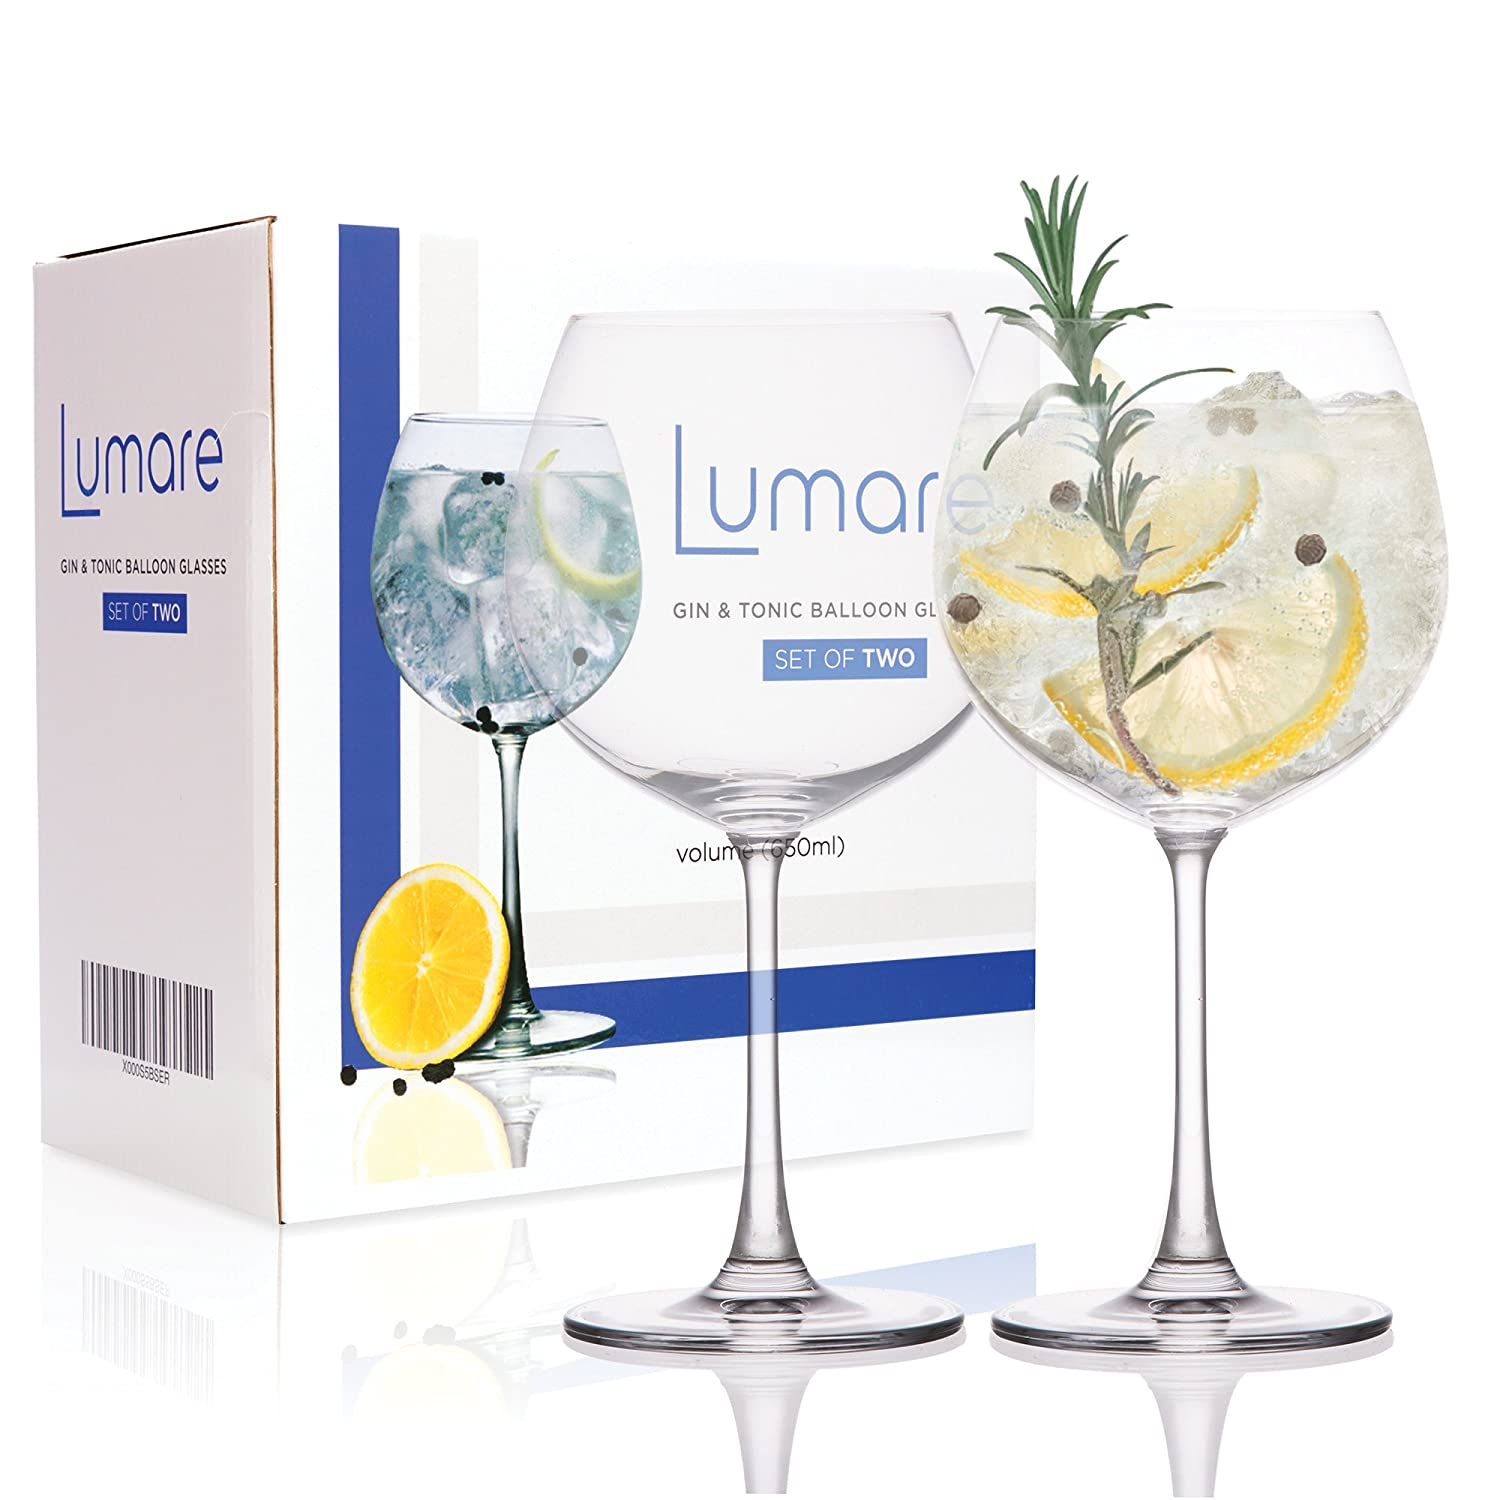 Crystal Gin Glasses - 650ml, Set of 2, Gift Boxed, Protective Packaging, Lead Free Crystal Glass, Large Gin Balloon Glasses Lumare